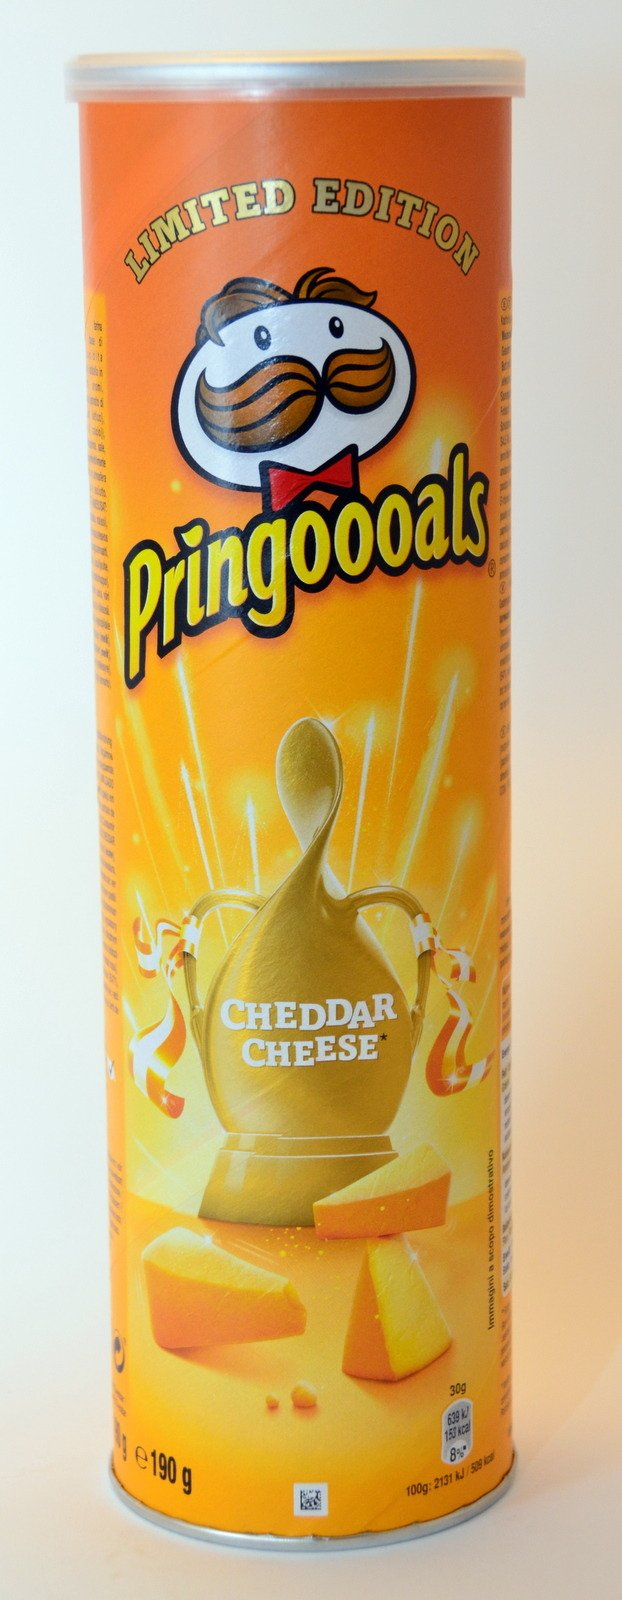 Pringles Cheddar Cheese 190 g | GROCERY \ Crisps and Snacks OFFER